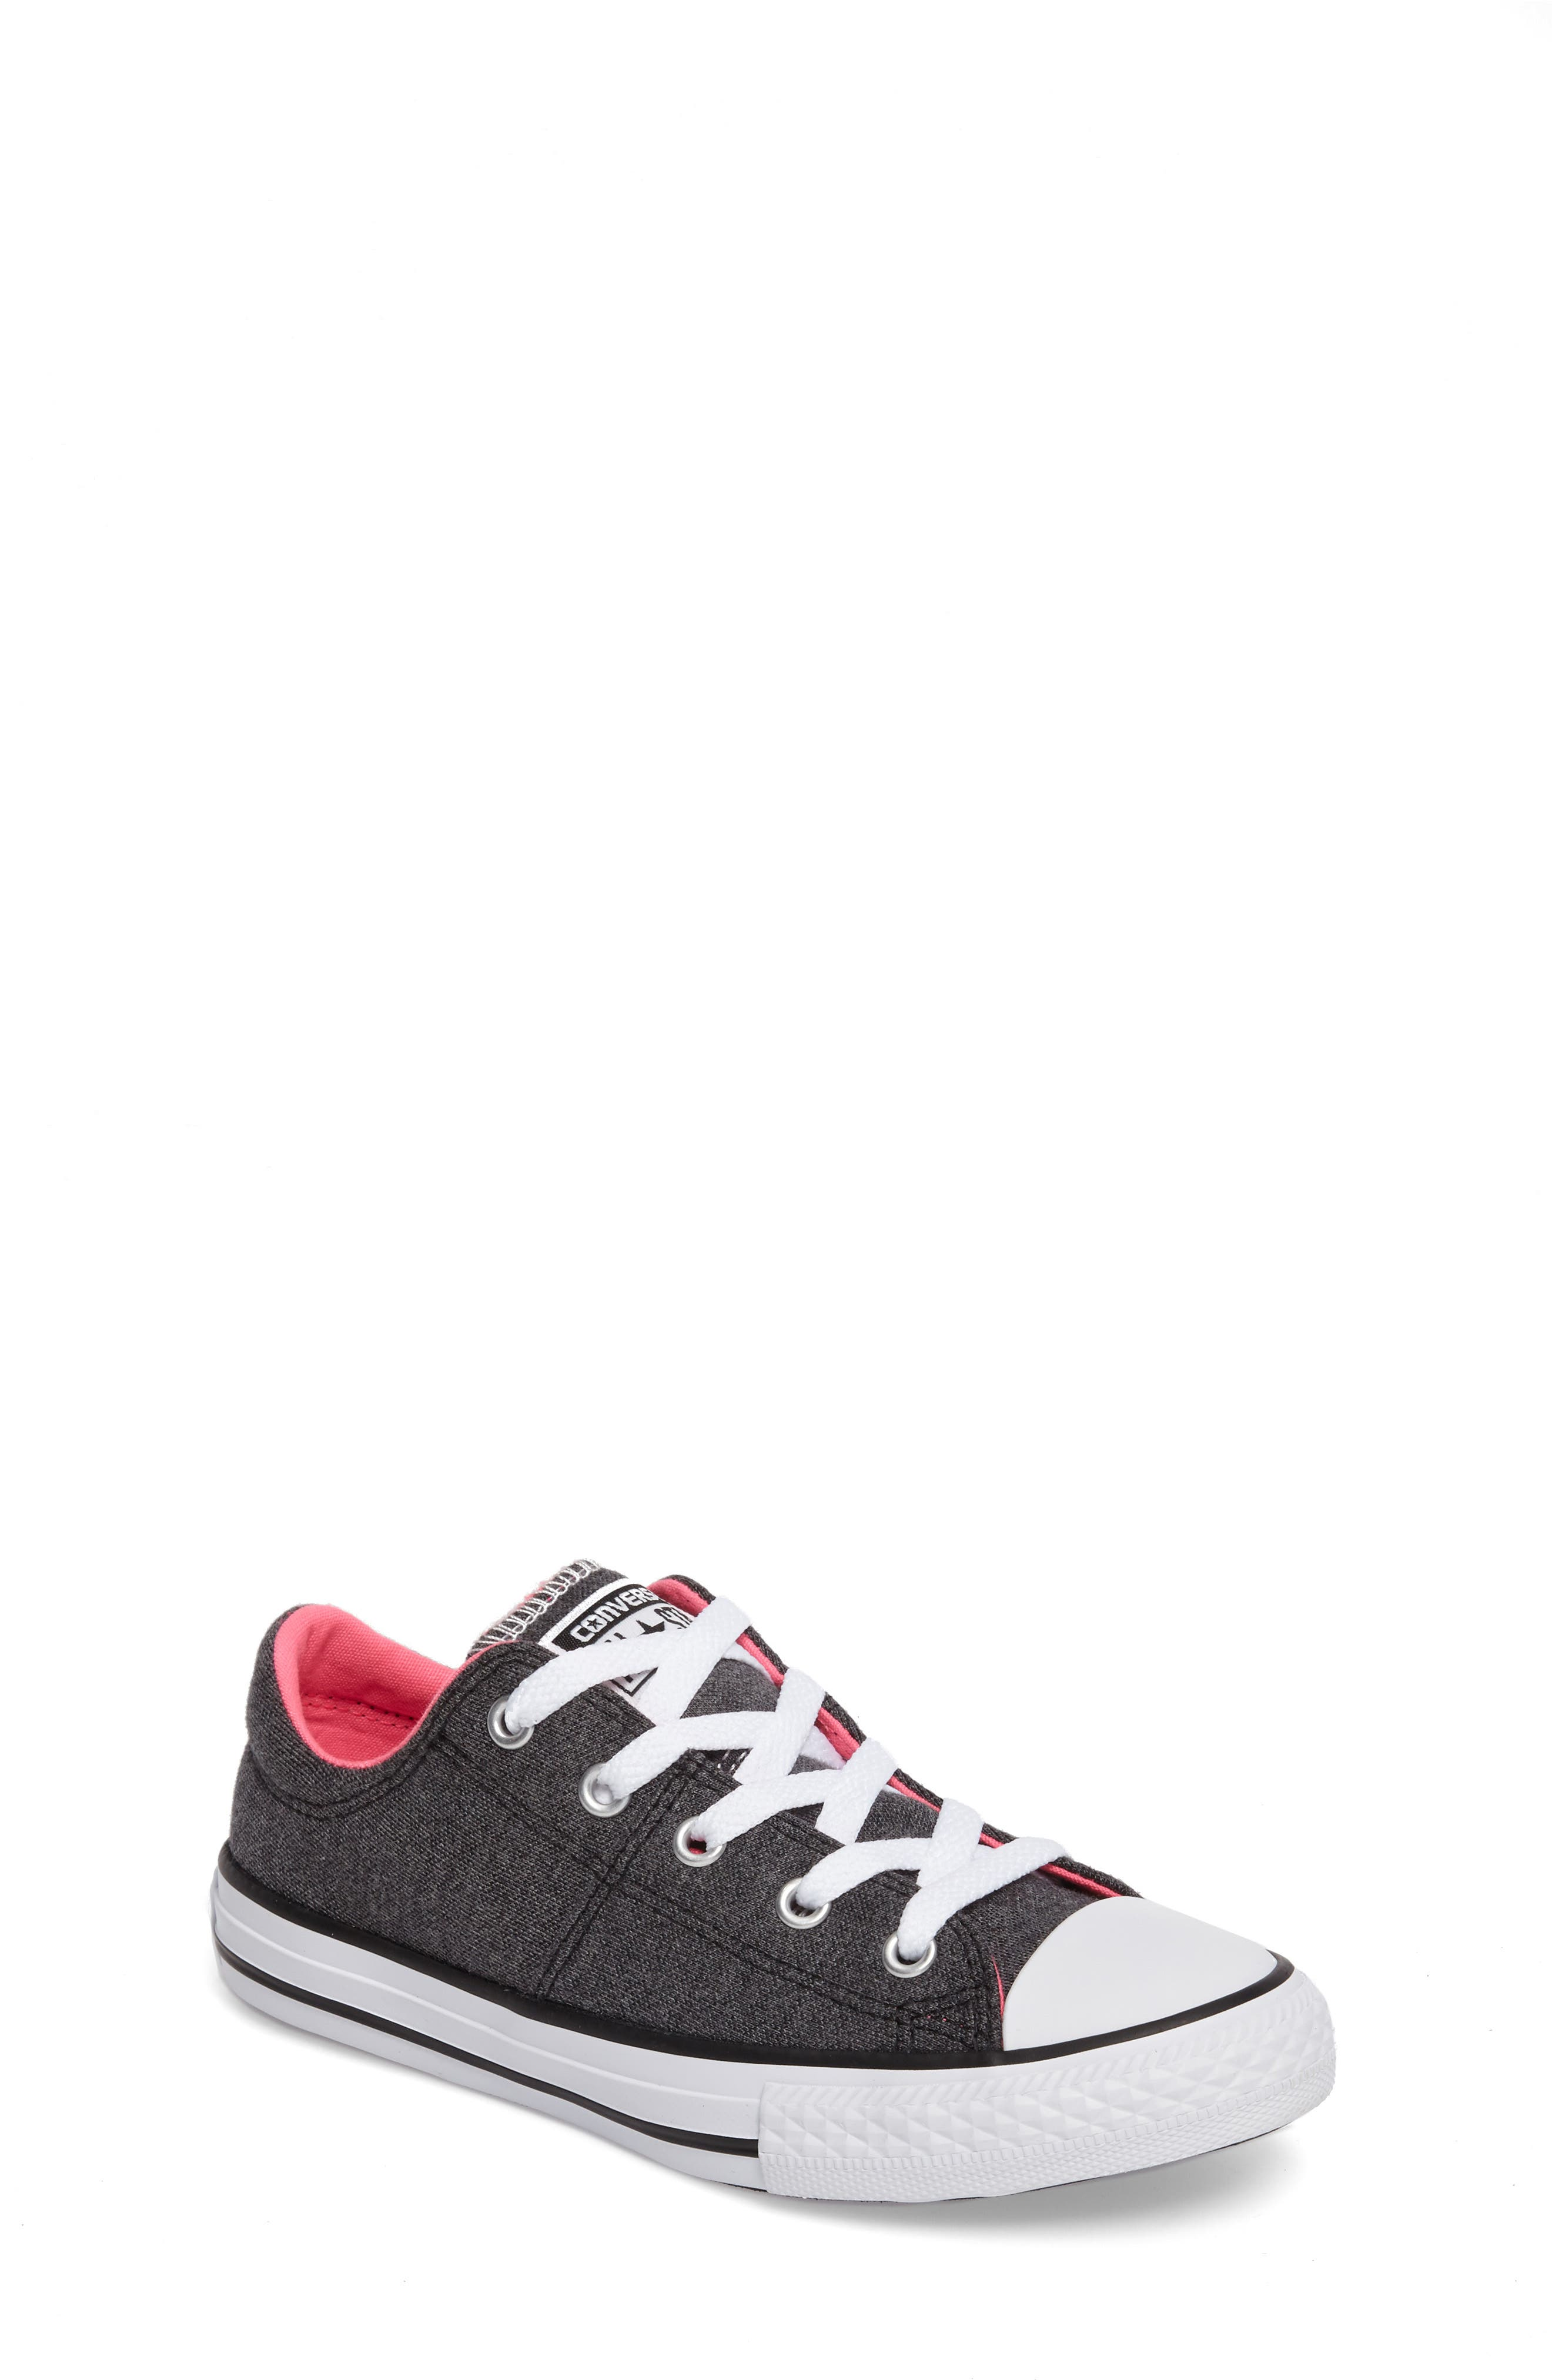 Chuck Taylor<sup>®</sup> All Star<sup>®</sup> Madison Low Top Sneaker,                             Main thumbnail 1, color,                             Black/ Pink Canvas